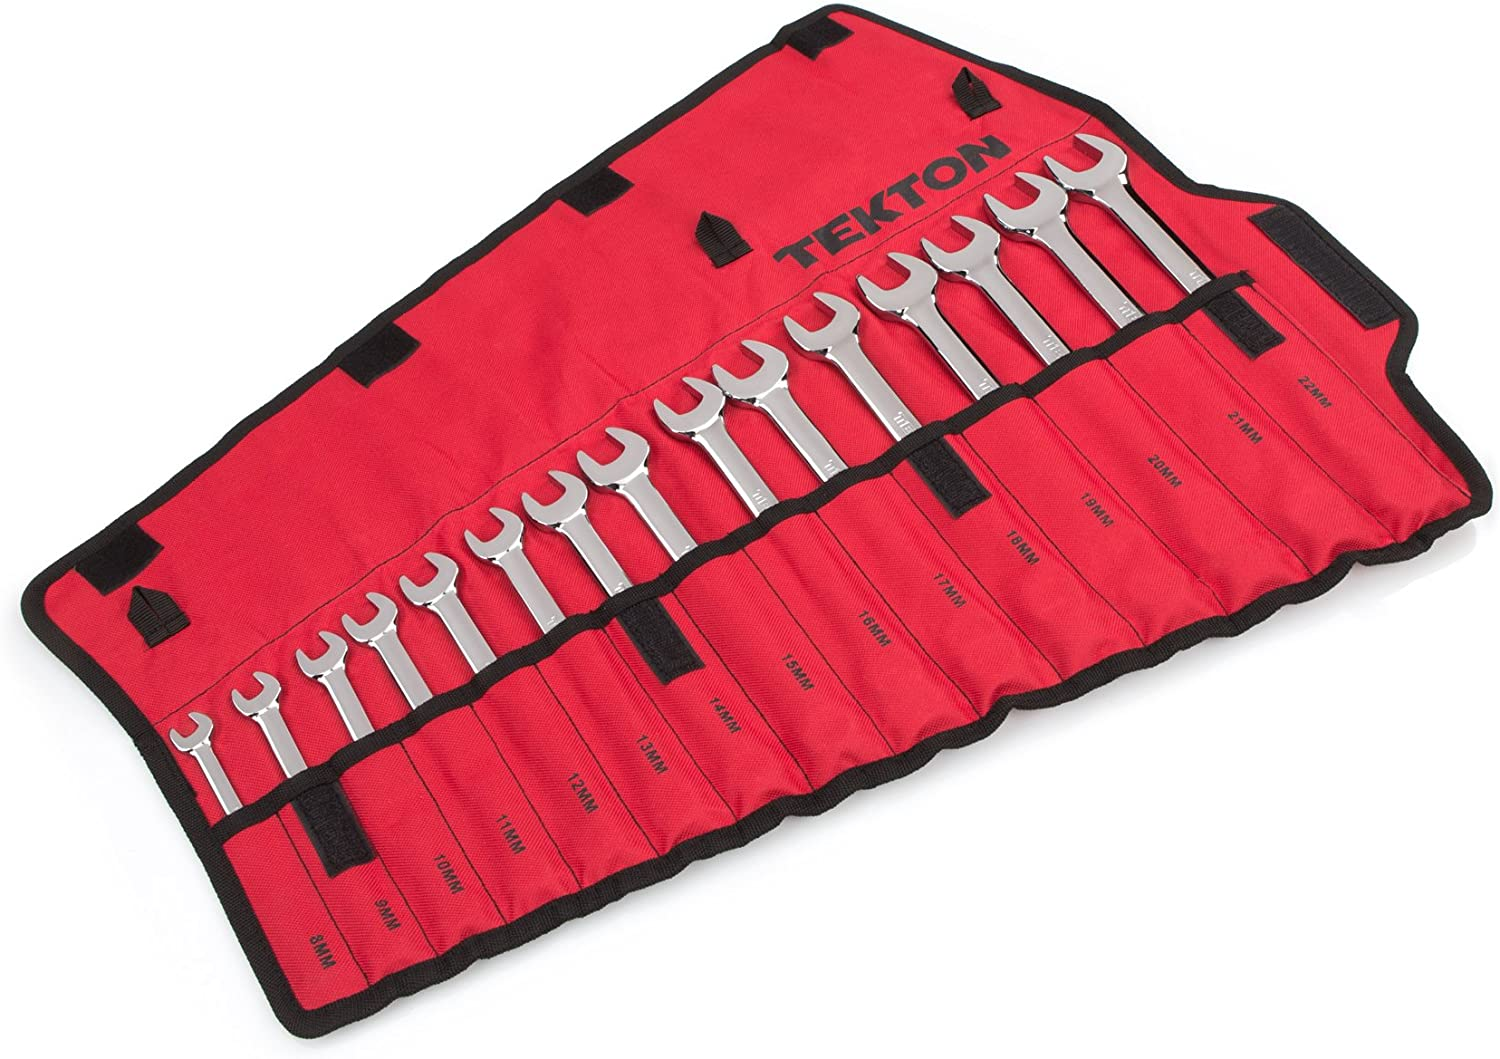 TEKTON Combination Wrench Set with Roll-up Storage Pouch, Metric, 8 mm - 22 mm, 15-Piece | WRN03393